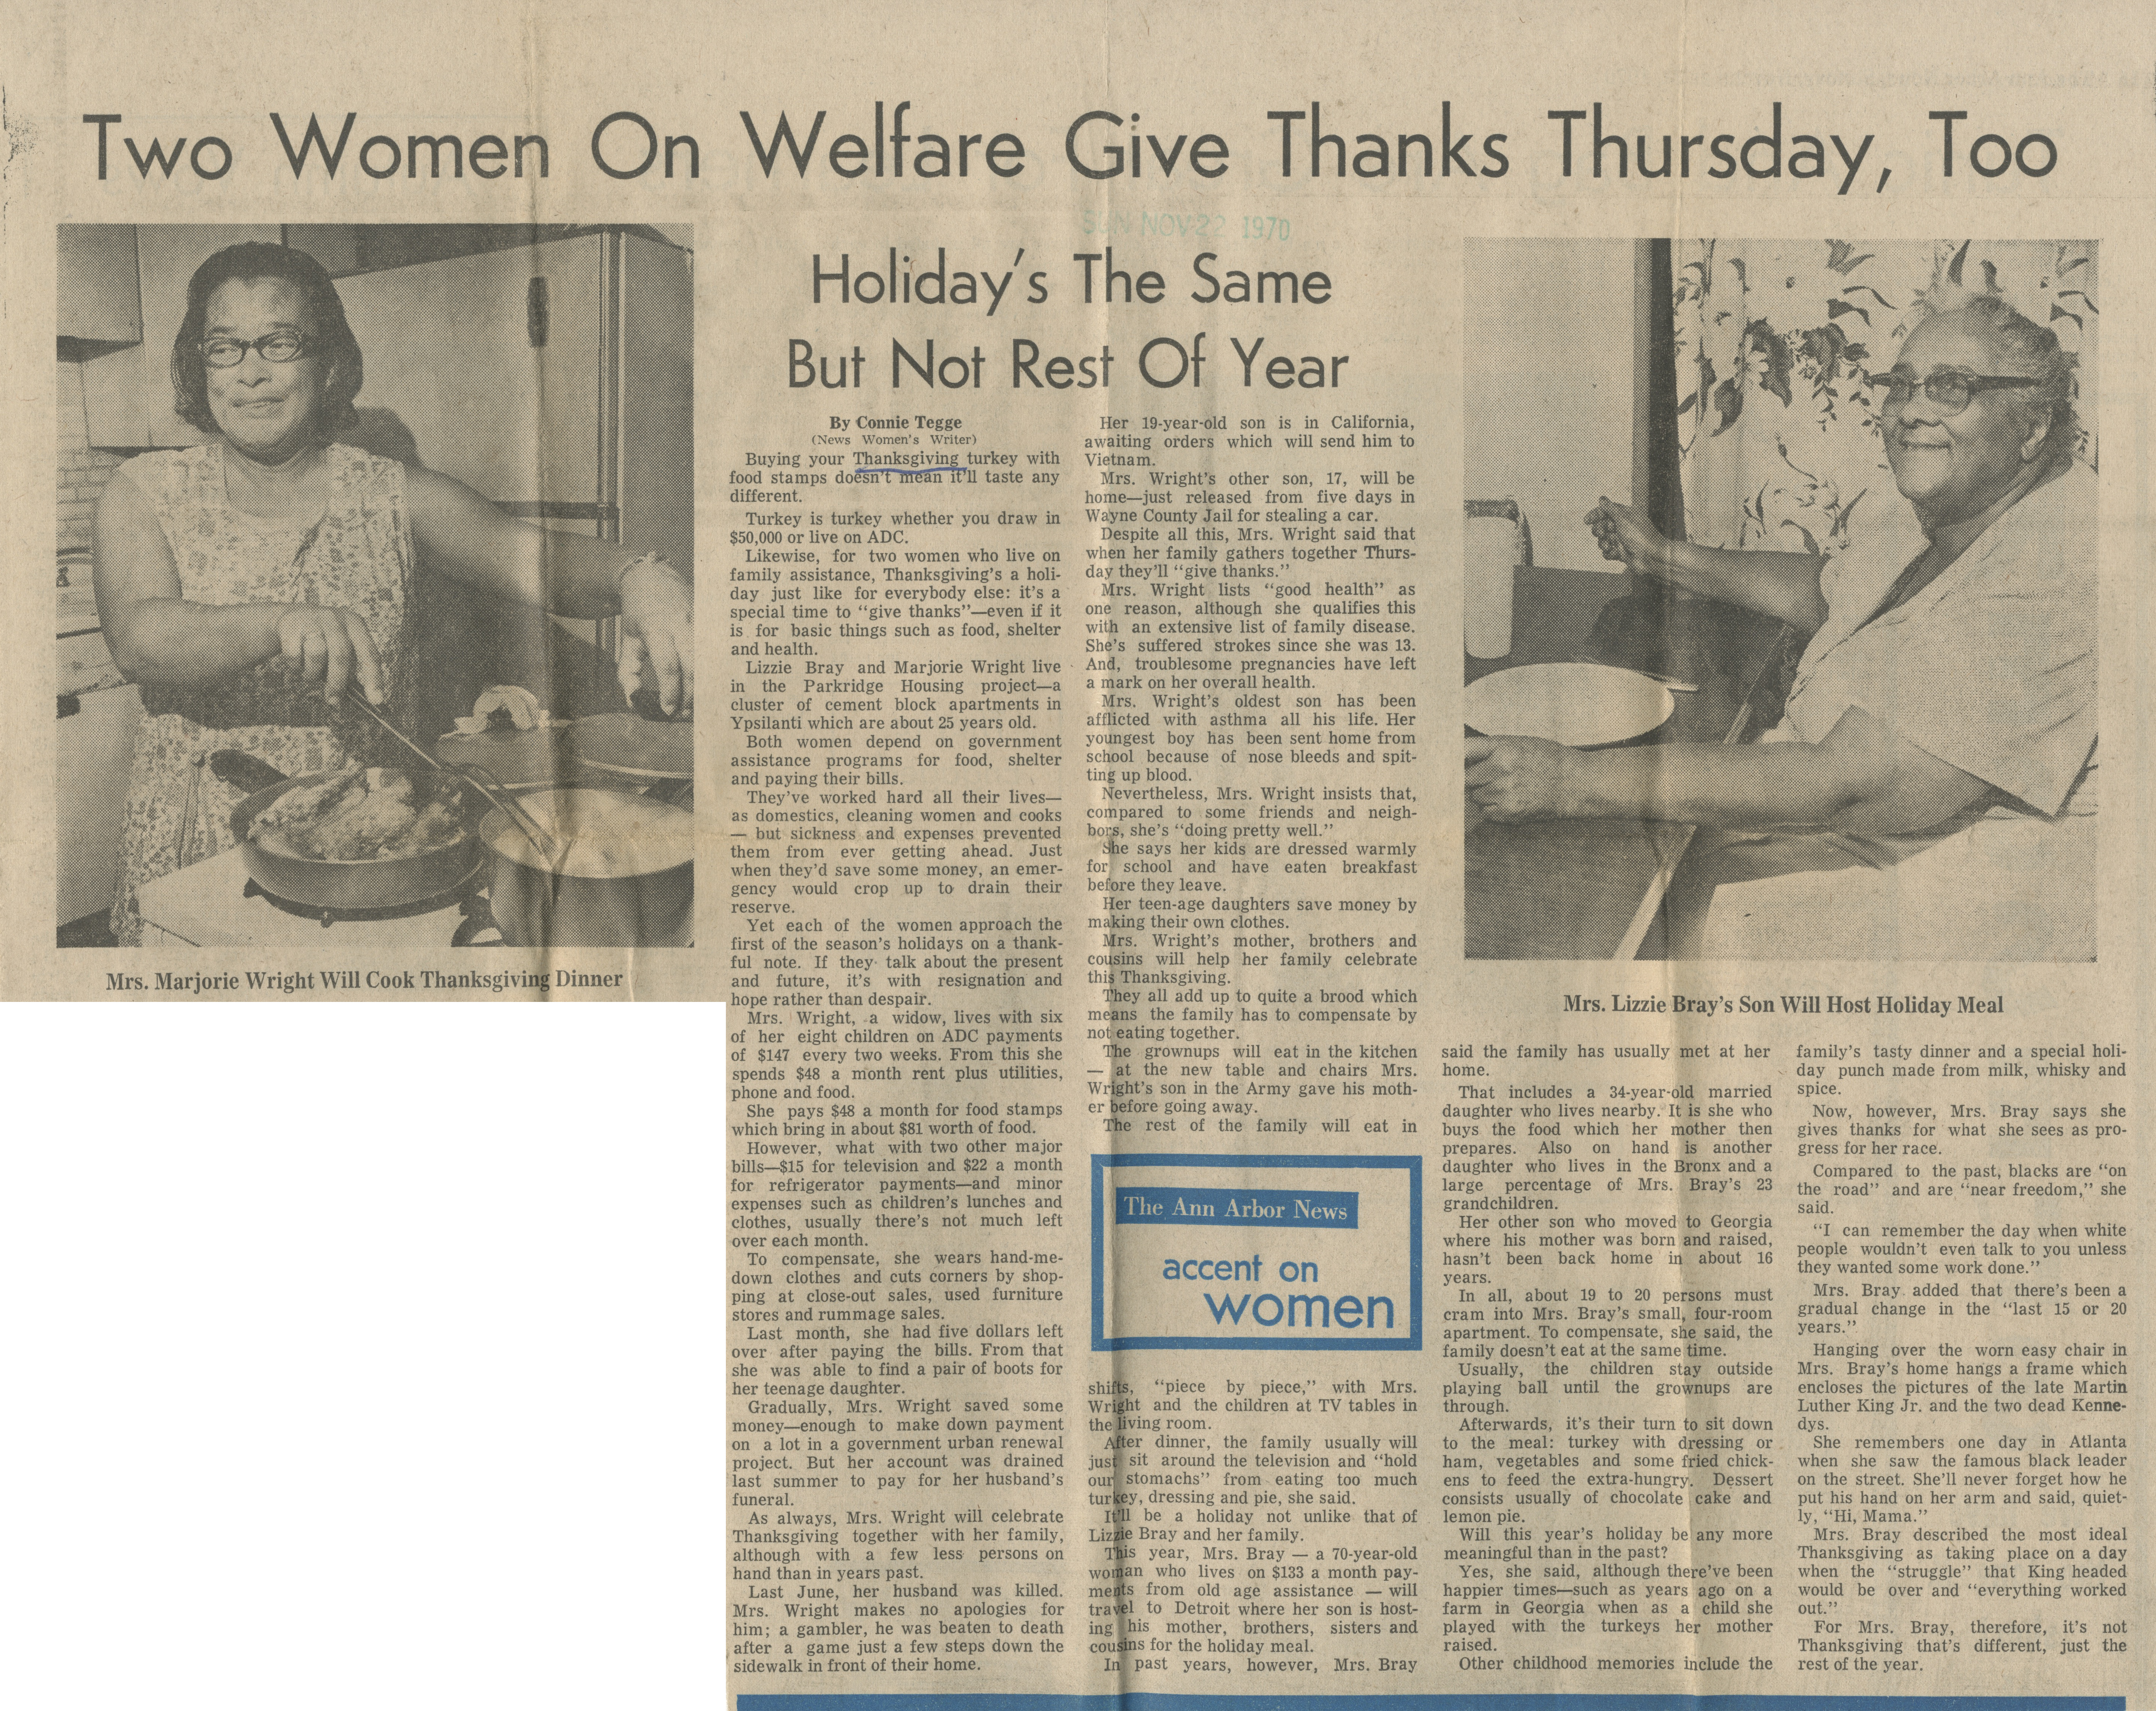 Two Women On Welfare Give Thanks Thursday, Too image